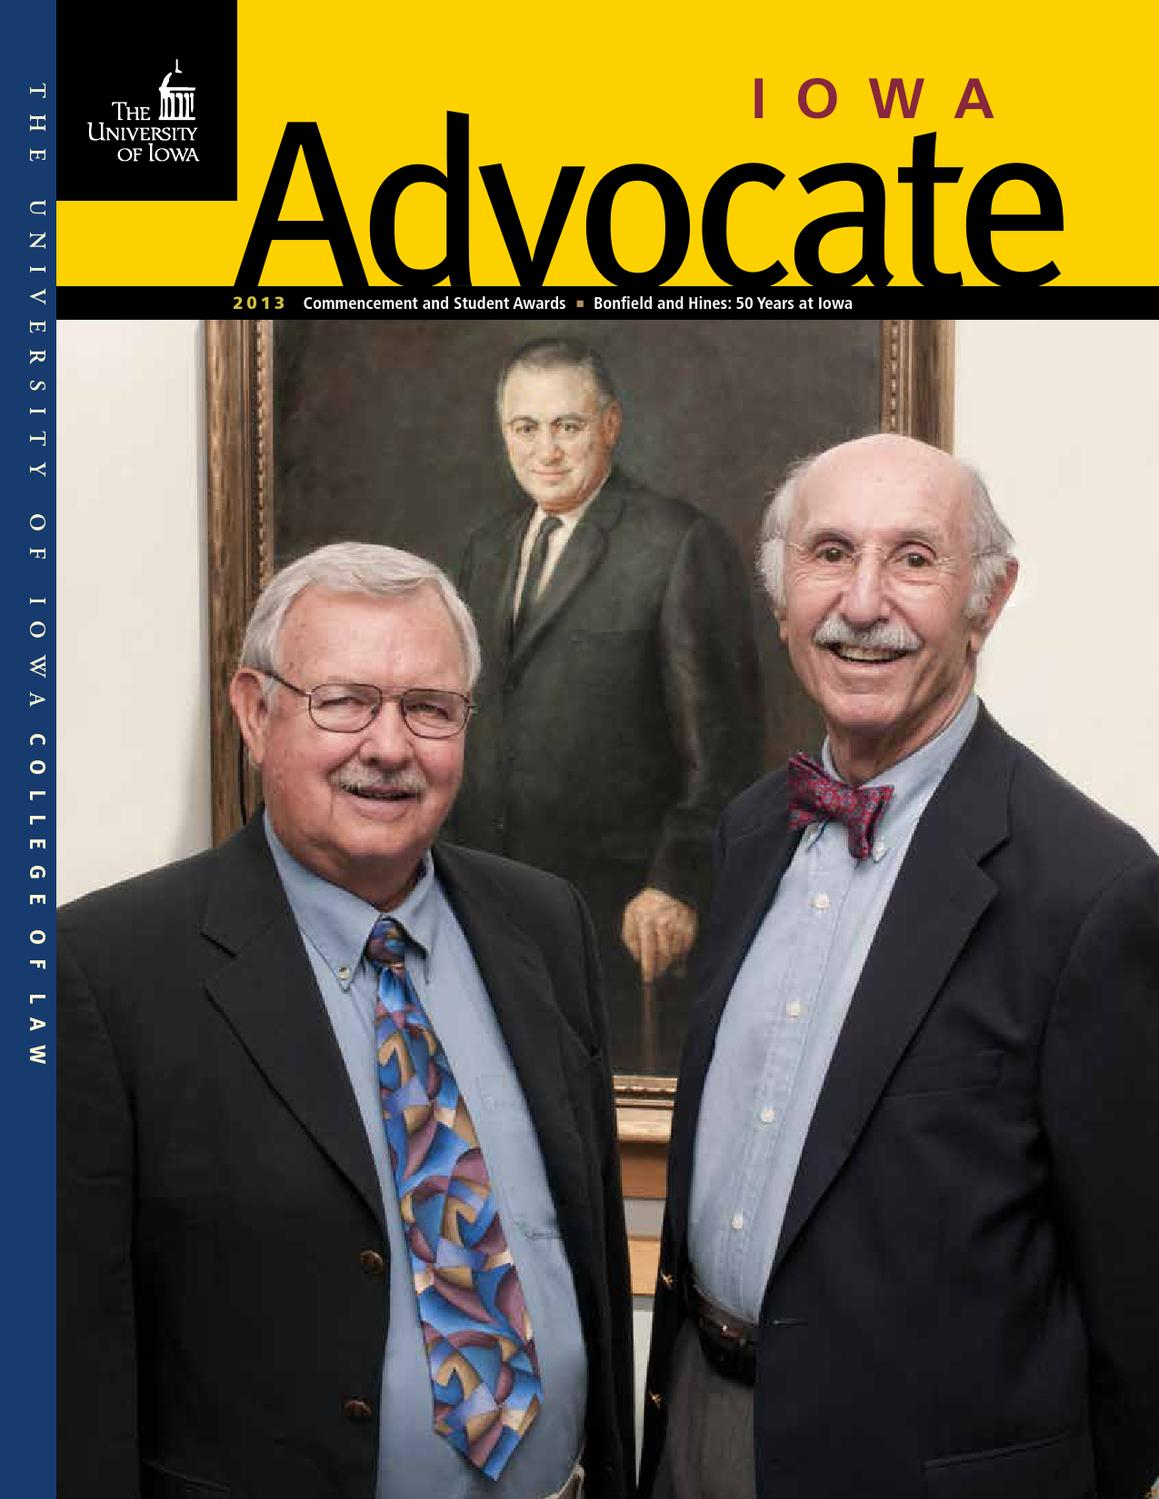 Iowa Advocate 2013 By The University Of College Law Issuu Dean W Armstrong Geiger Counter Clicker Schematic